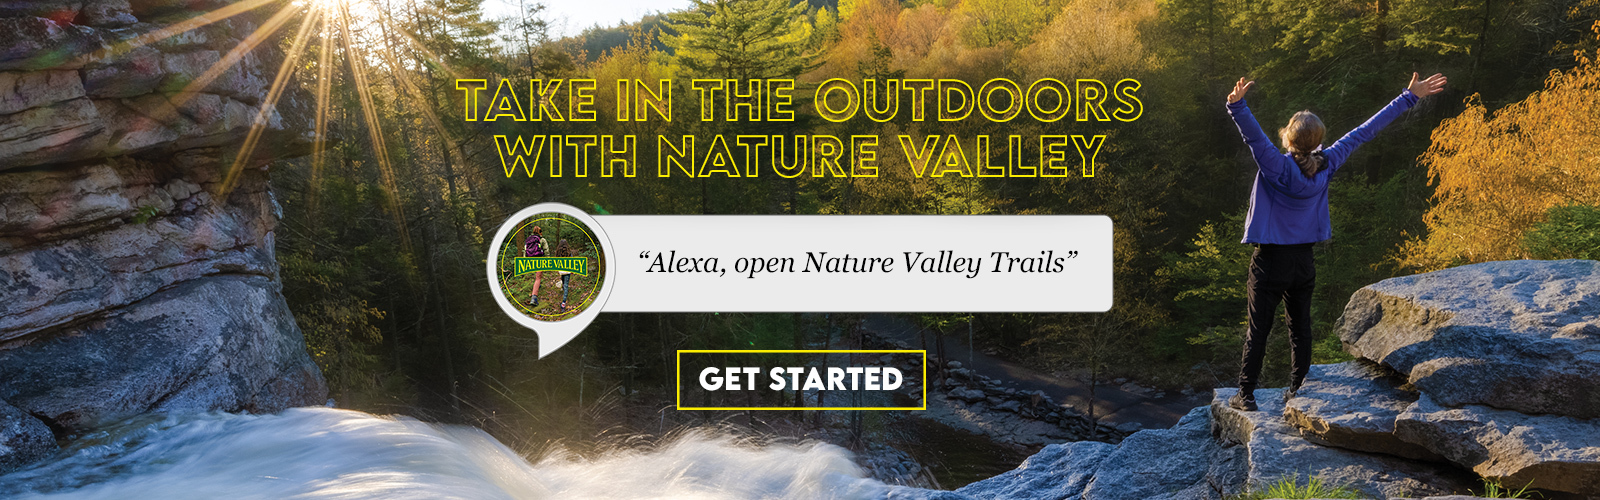 Take in the outdoors with Nature Valley. Alexa, open Nature Valley Trails. Get Started.